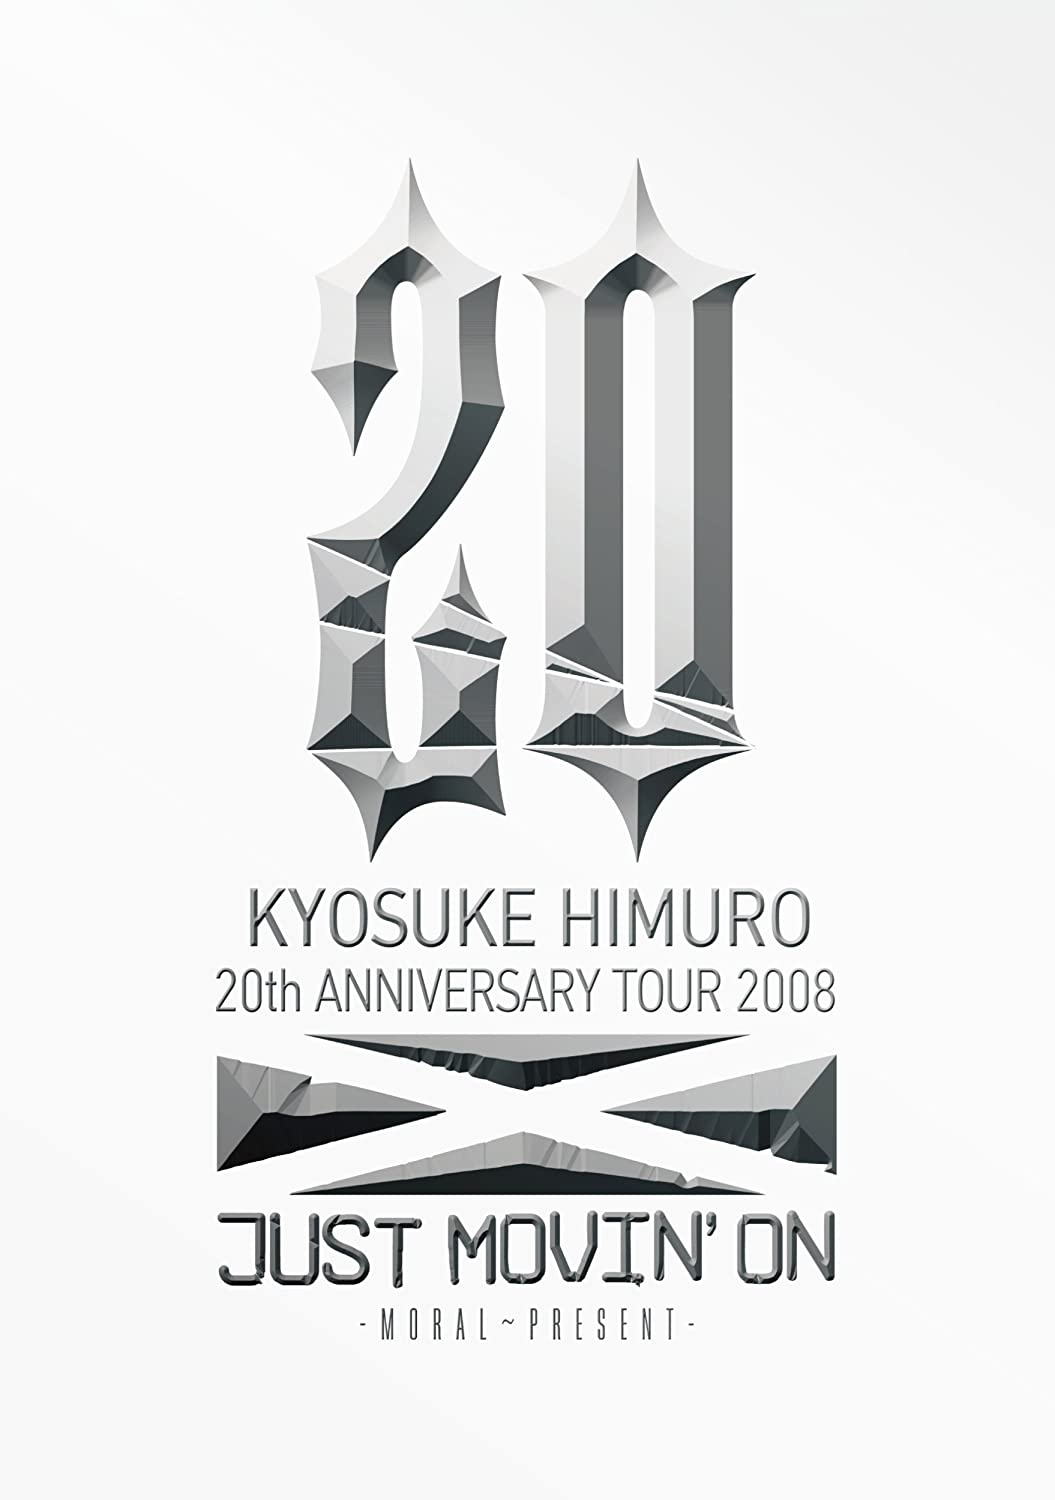 KYOSUKE HIMURO 20th ANNIVERSARY TOUR 2008 JUST MOVIN'ON-MORAL~PRESENT- [DVD] B001LCJD86